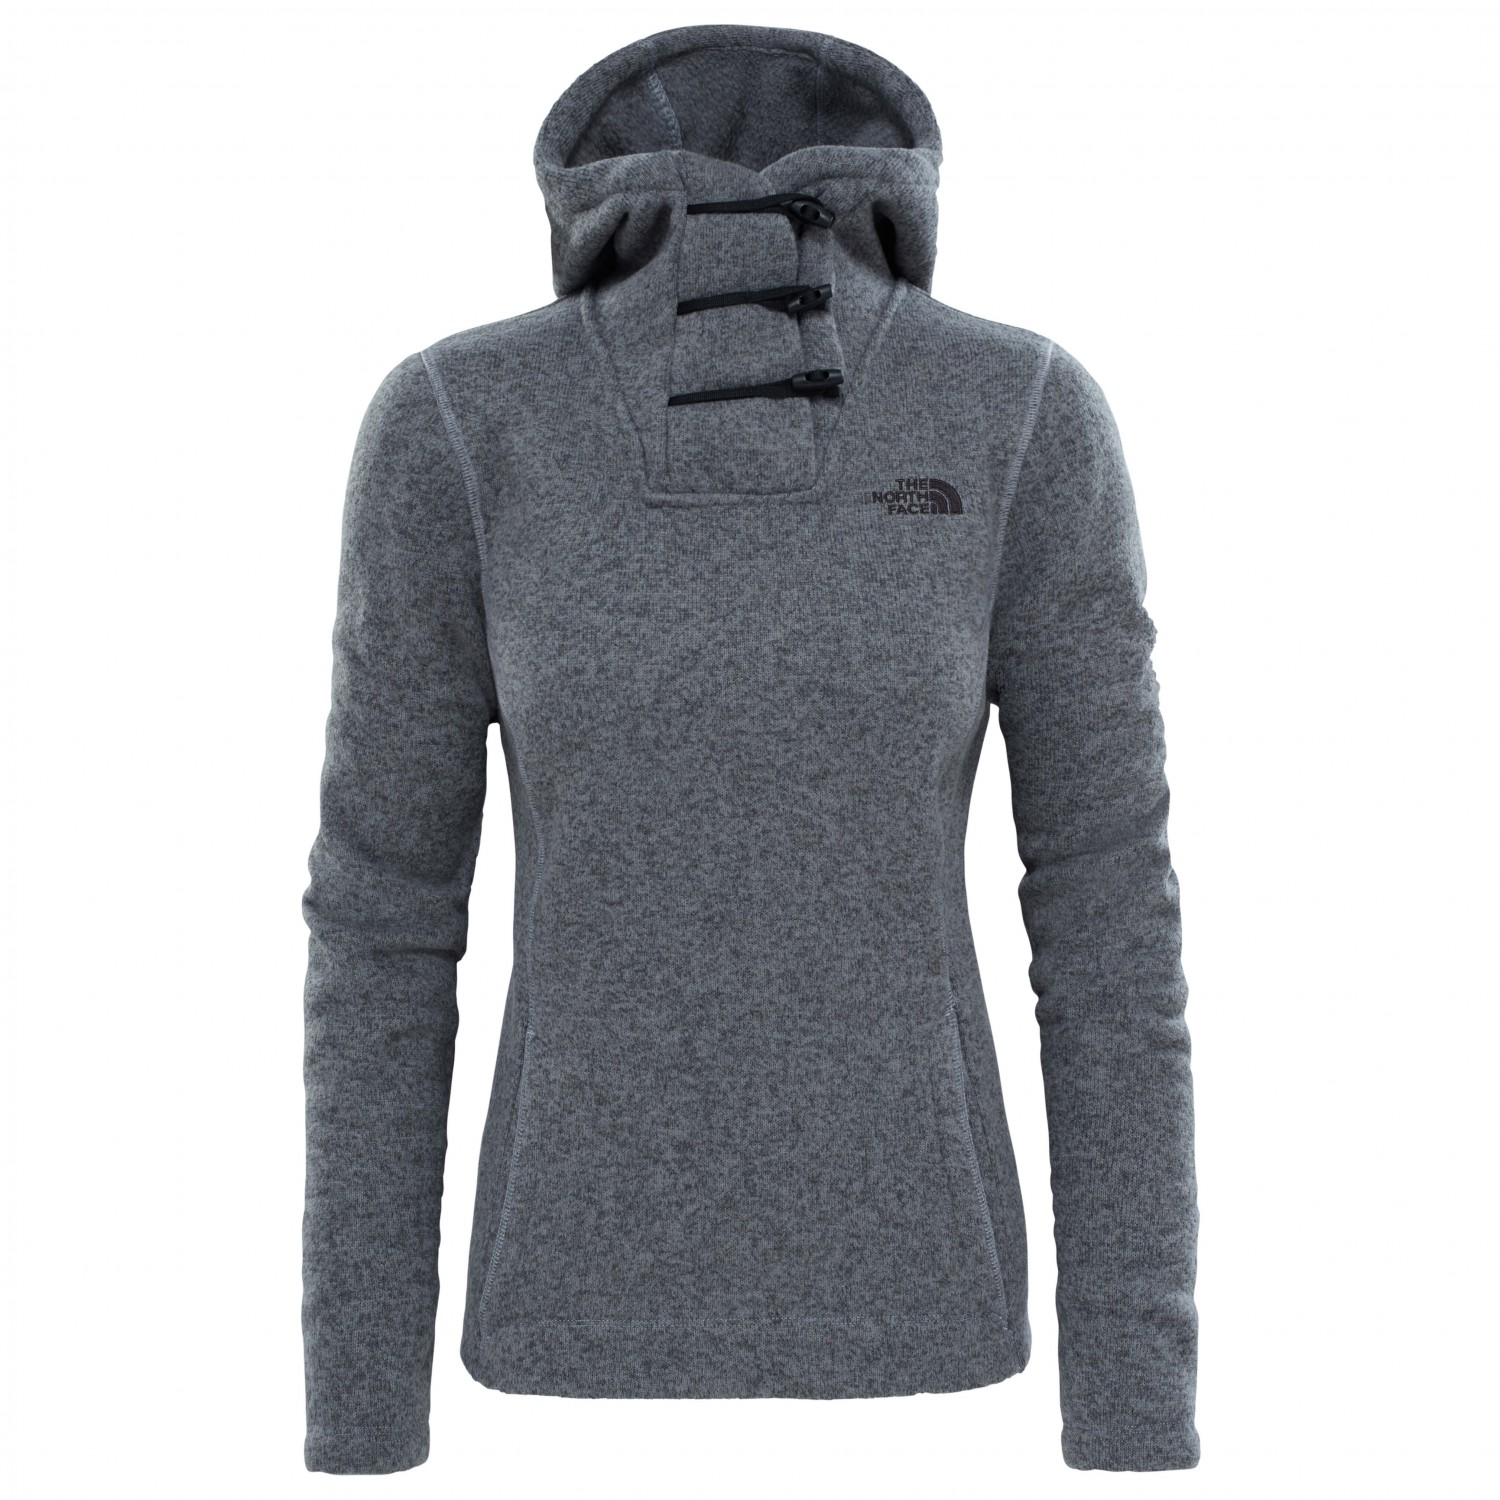 0c0ed078a The North Face Crescent Hoodie Pullover Women's | Buy online ...